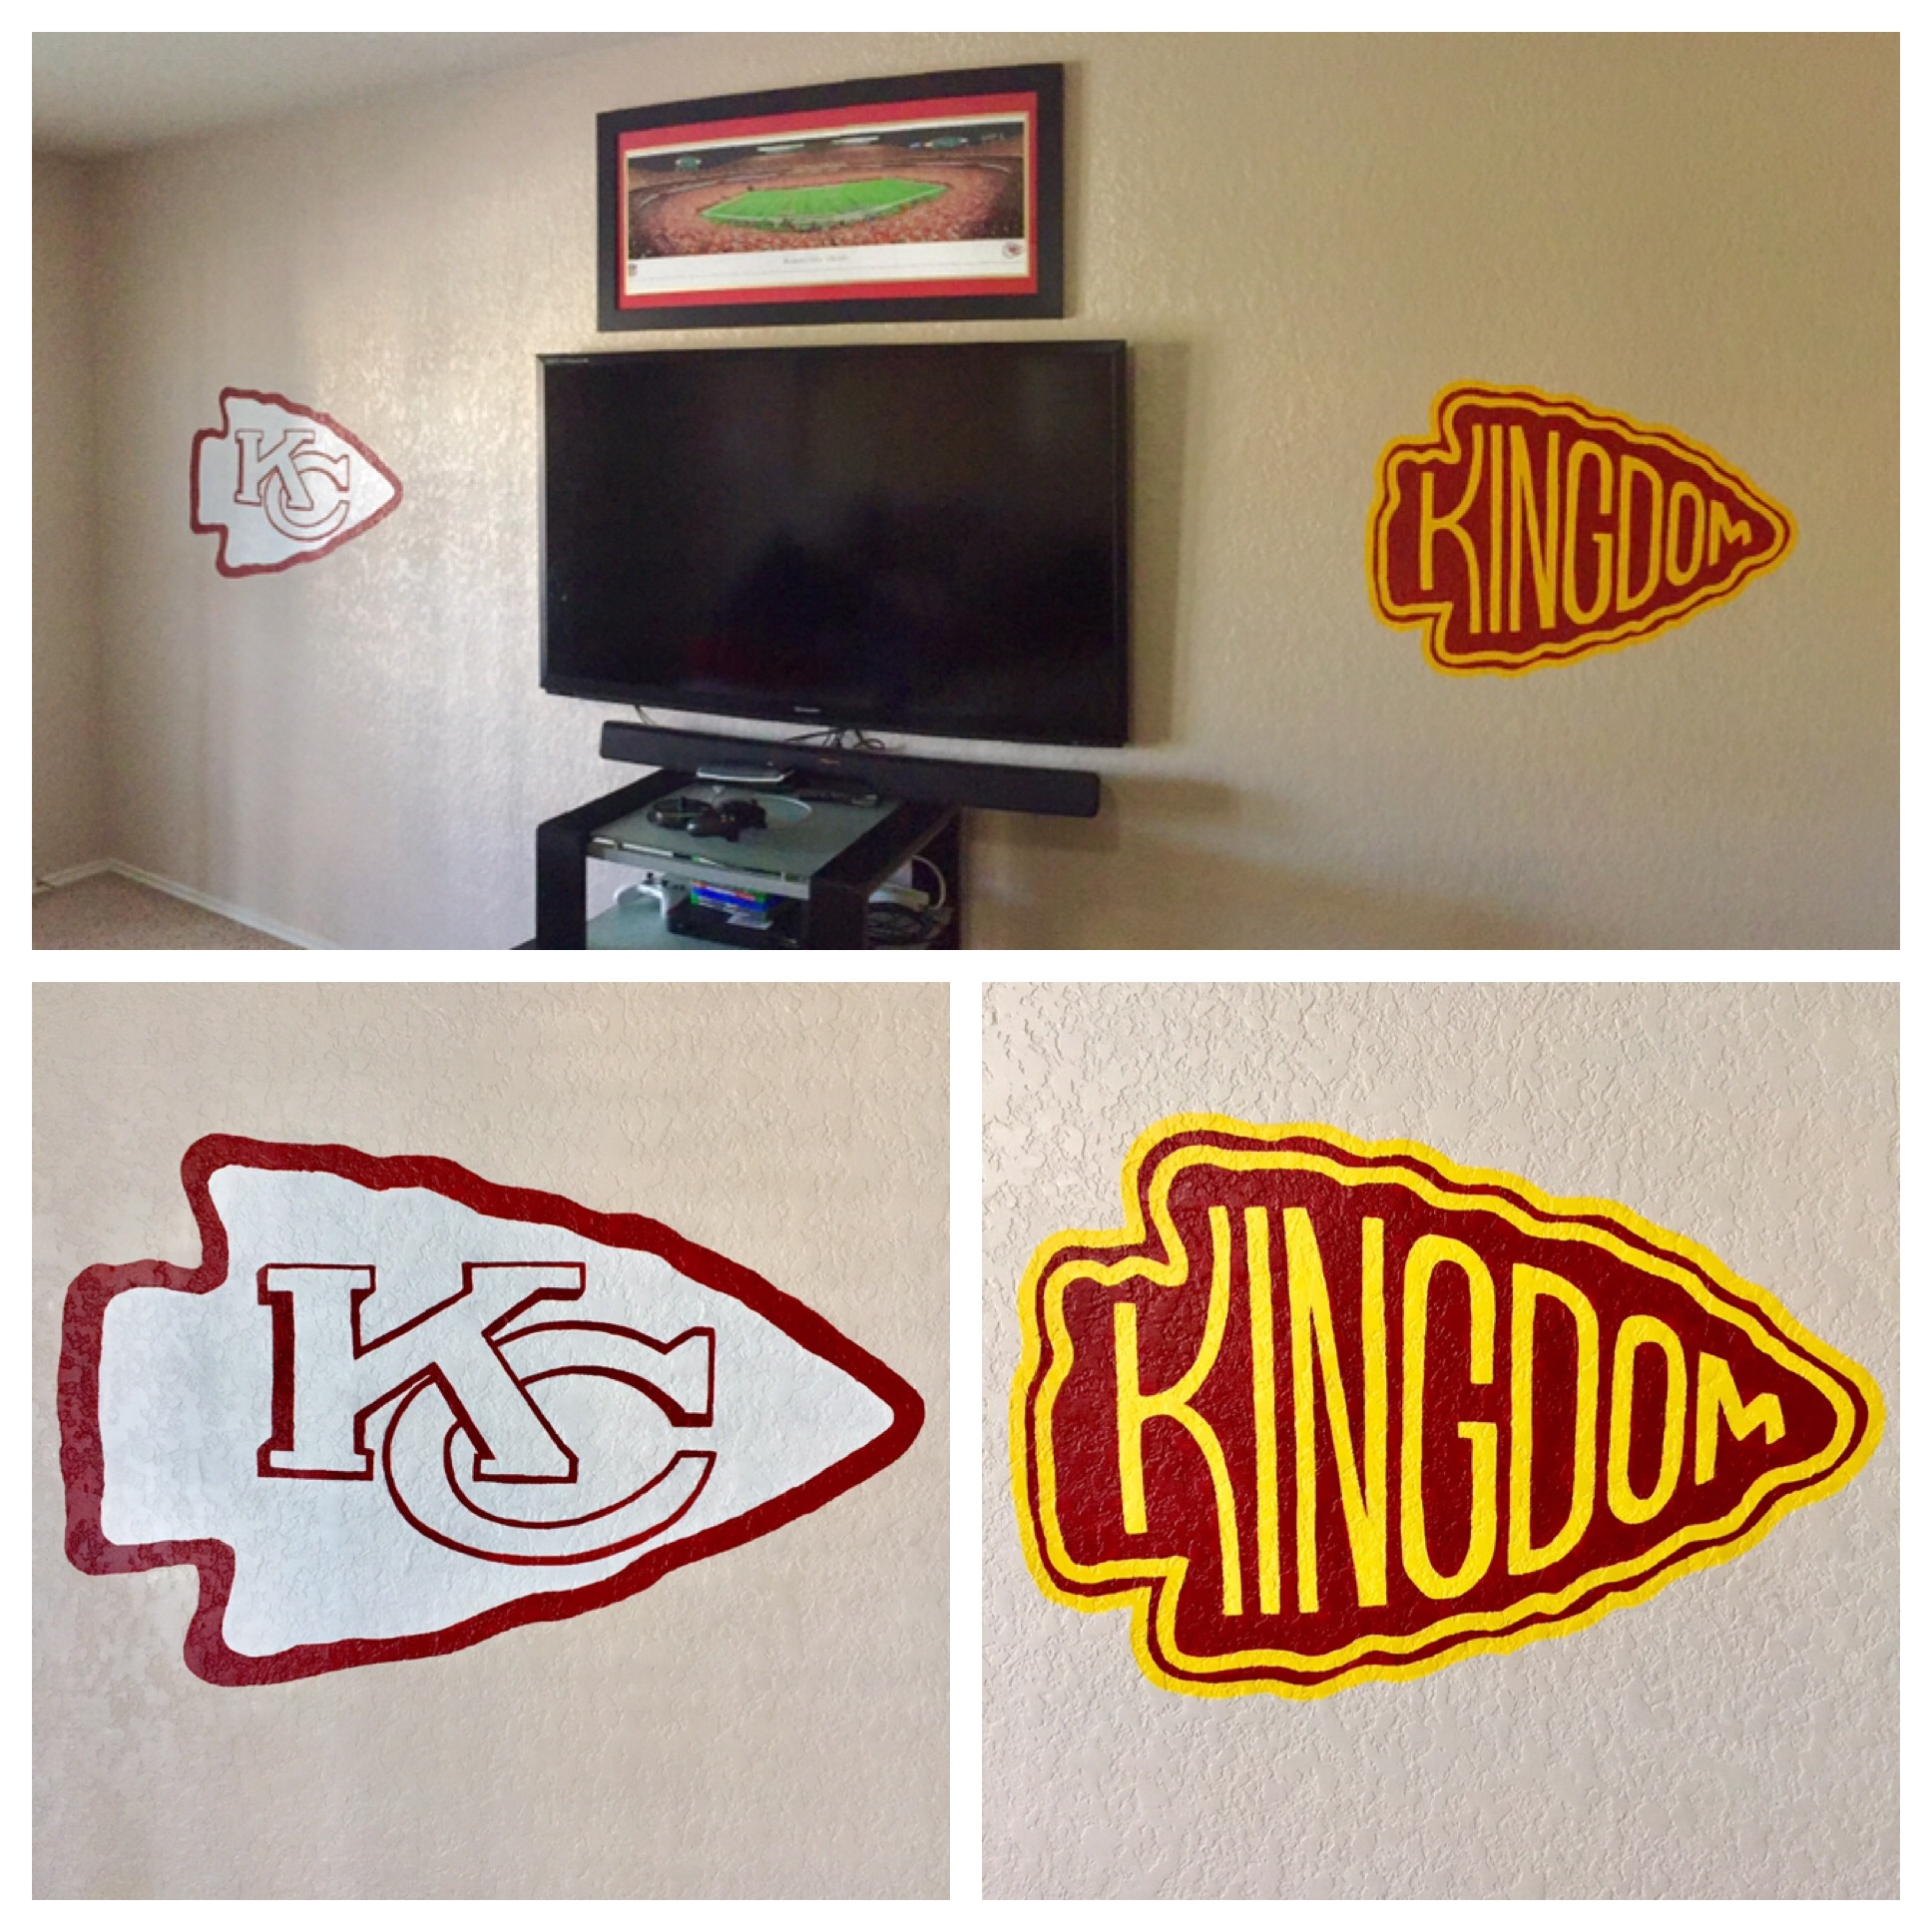 Chiefs Arrowheads